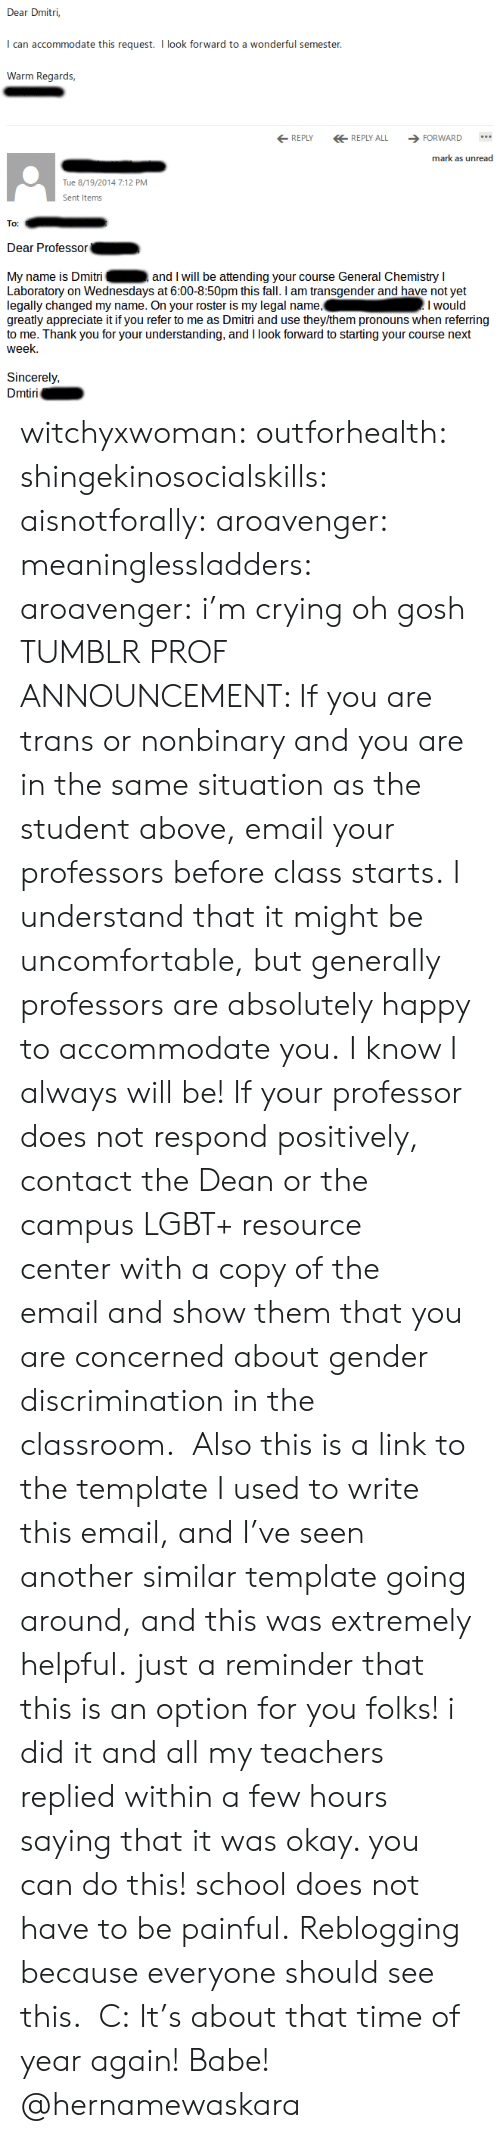 Crying, Fall, and Lgbt: Dear Dmitri,  can accommodate this request. I look forward to a wonderful semester  Wann Reak  REPLYREPLY ALL FORWARD  mark as unread  Tue 8/19/2014 7:12 PM  Sent Item  To:  Dear Professor  My name is Dmitri  Laboratory on Wednesdays at 6:00-8:50pm this fall. I am transgender and have not yet  legally changed my name. On your roster is my legal name,Iwould  greatly appreciate it if you refer to me as Dmitri and use they/them pronouns when referring  to me. Thank you for your understanding, and I look forward to starting your course next  week.  and I will be attending your course General Chemistry I  Sincerely,  iri witchyxwoman:  outforhealth: shingekinosocialskills:  aisnotforally:  aroavenger:  meaninglessladders:  aroavenger:  i'm crying oh gosh  TUMBLR PROF ANNOUNCEMENT: If you are trans or nonbinary and you are in the same situation as the student above, email your professors before class starts. I understand that it might be uncomfortable, but generally professors are absolutely happy to accommodate you. I know I always will be! If your professor does not respond positively, contact the Dean or the campus LGBT+ resource center with a copy of the email and show them that you are concerned about gender discrimination in the classroom.   Also this is a link to the template I used to write this email, and I've seen another similar template going around, and this was extremely helpful.  just a reminder that this is an option for you folks! i did it and all my teachers replied within a few hours saying that it was okay. you can do this! school does not have to be painful.   Reblogging because everyone should see this.  C:  It's about that time of year again!   Babe! @hernamewaskara